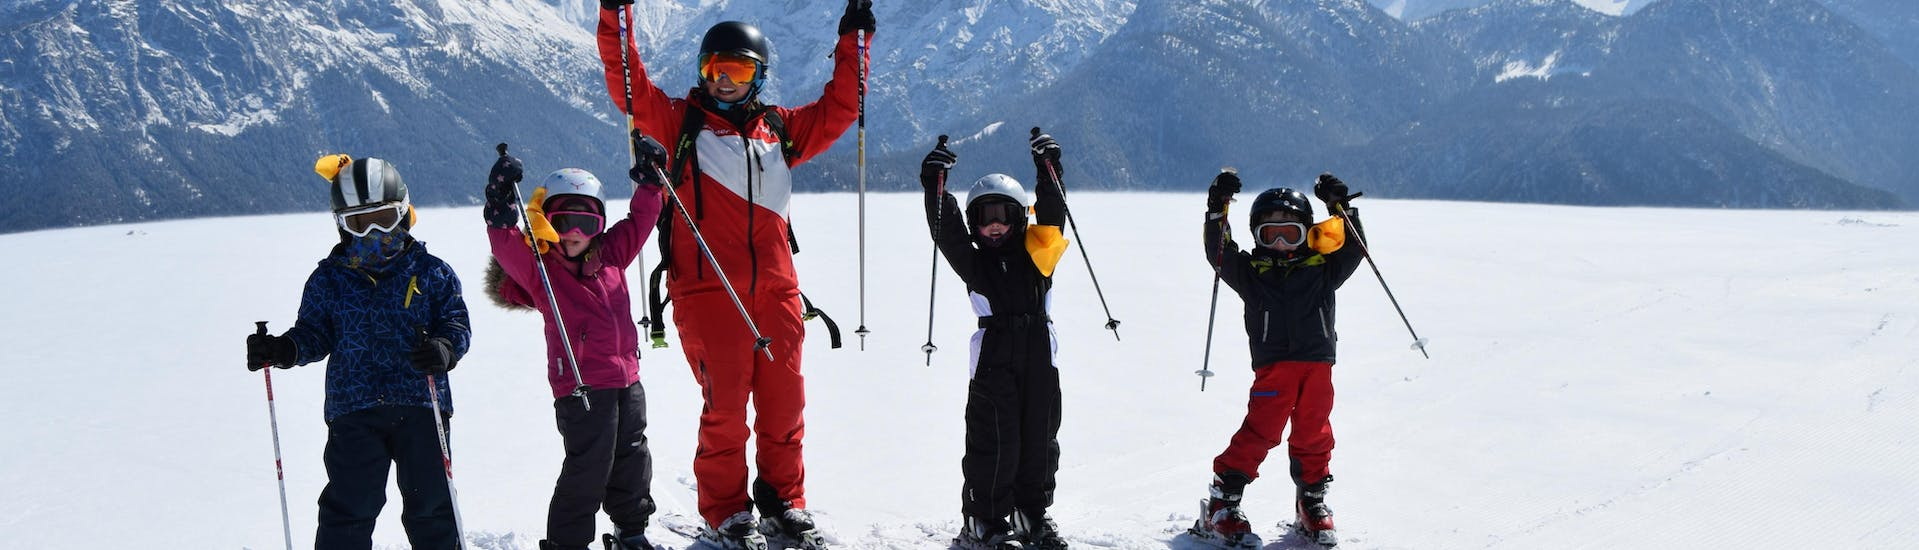 Kids Ski Lessons (4-11 y.) for Advanced Skiers with HERBST Skischule Lofer - Hero image